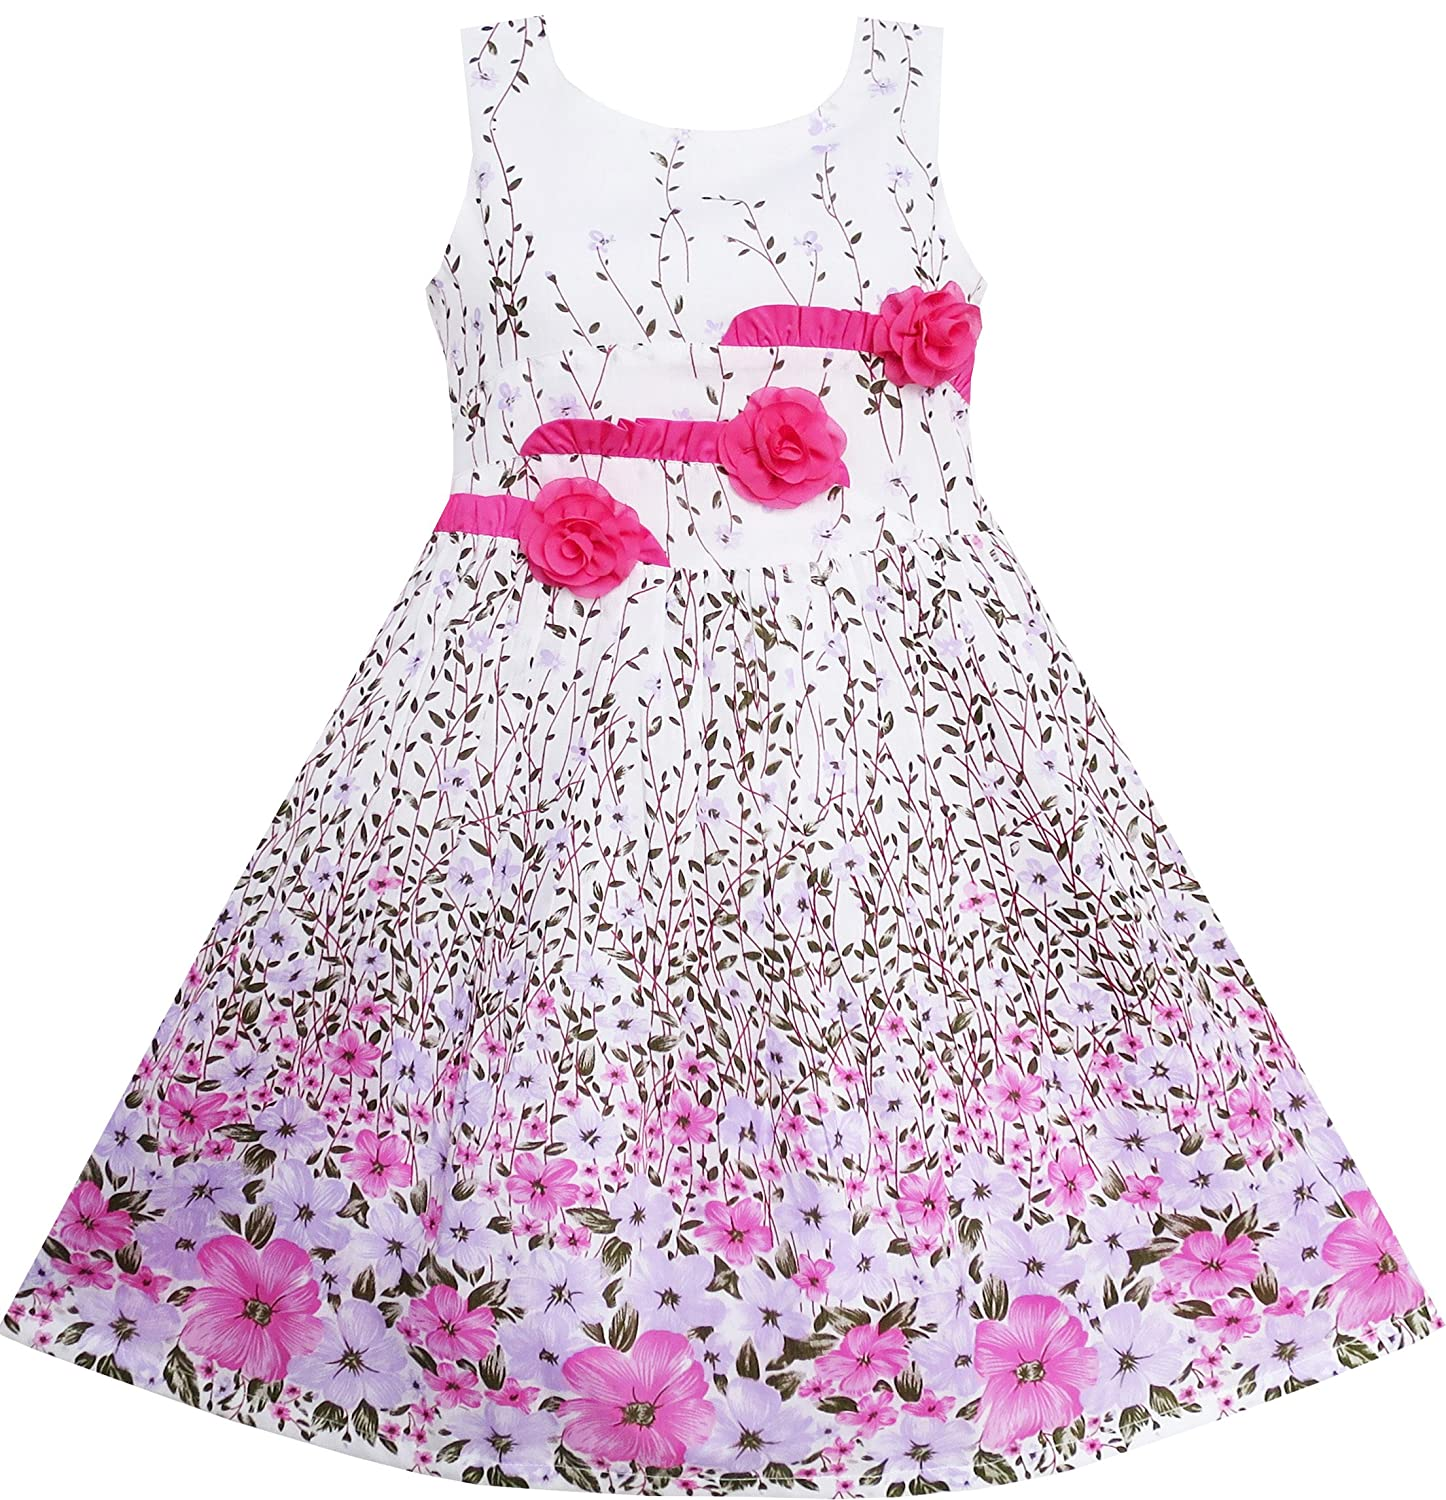 Sunny Fashion Girls Dress Butterfly Bow Tie Floral Birthday Size 4-12 USFA0EY31-P